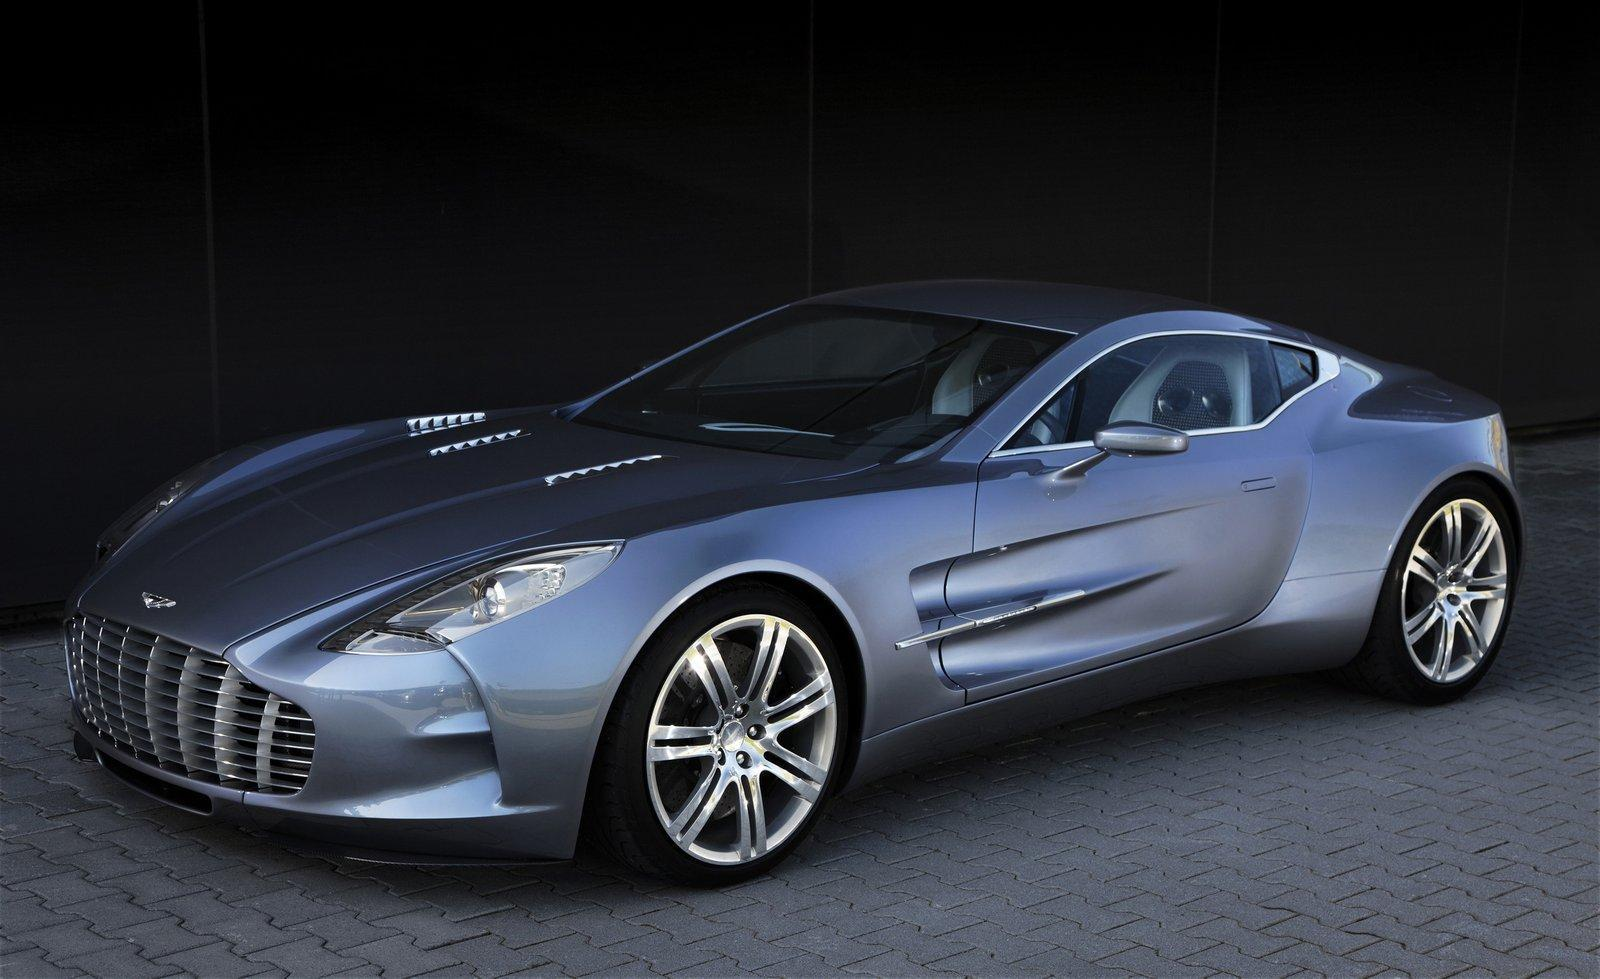 Blue metallic Aston Martin one 77 wallpapers and images   wallpapers 1600x979